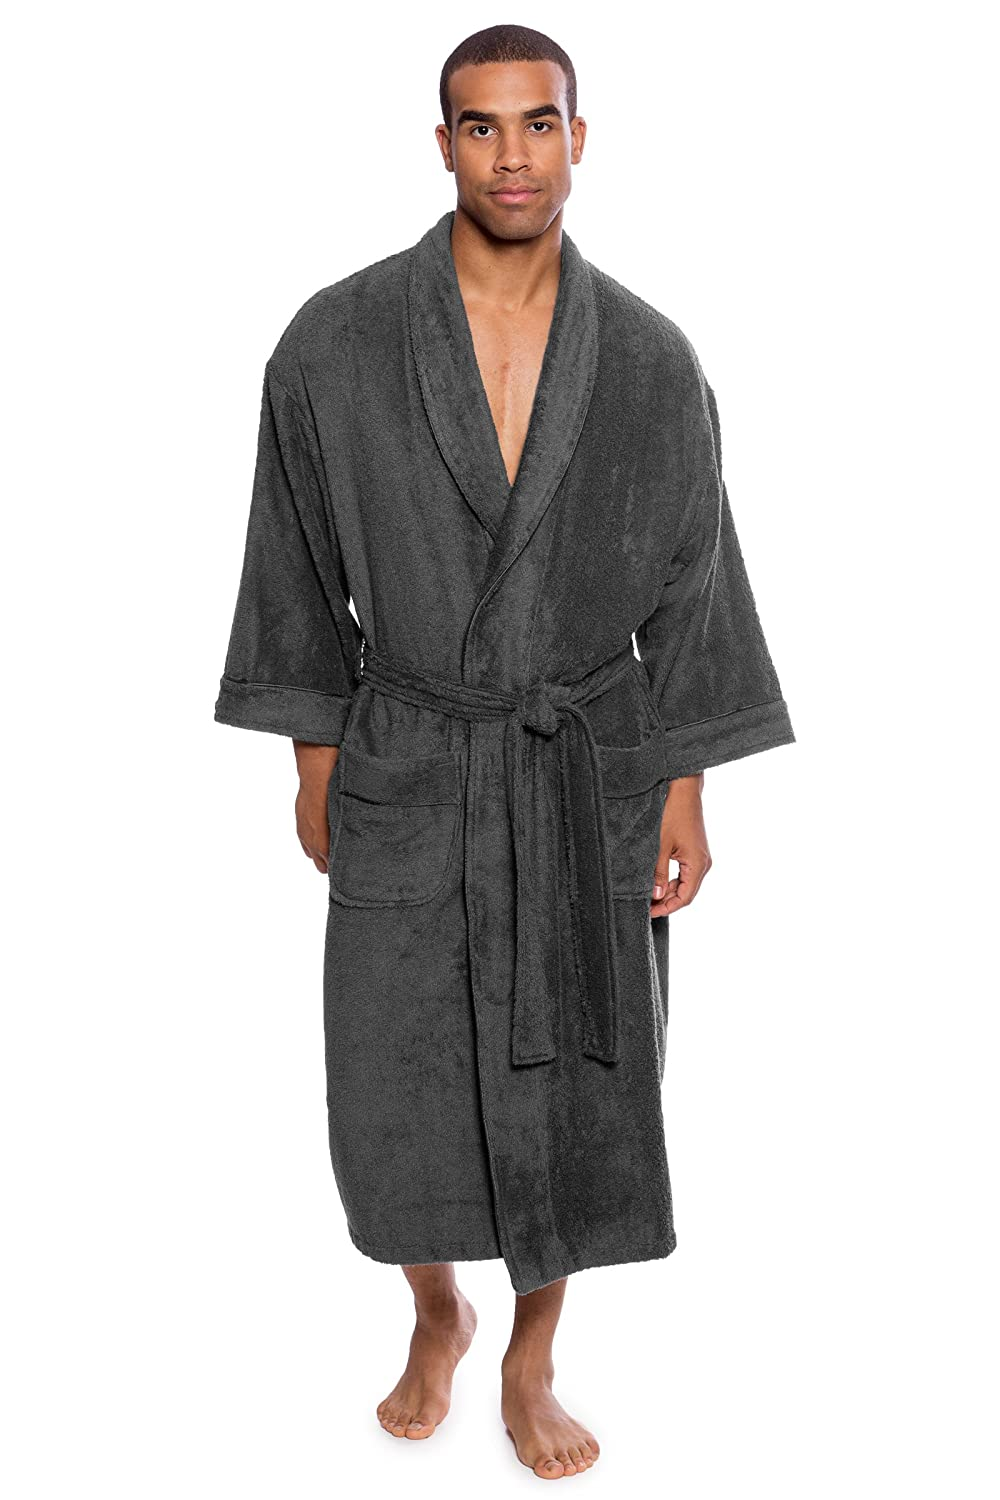 Men's Luxury Terry Cloth Bathrobe - Soft Spa Robe by Texere (EcoComfort)